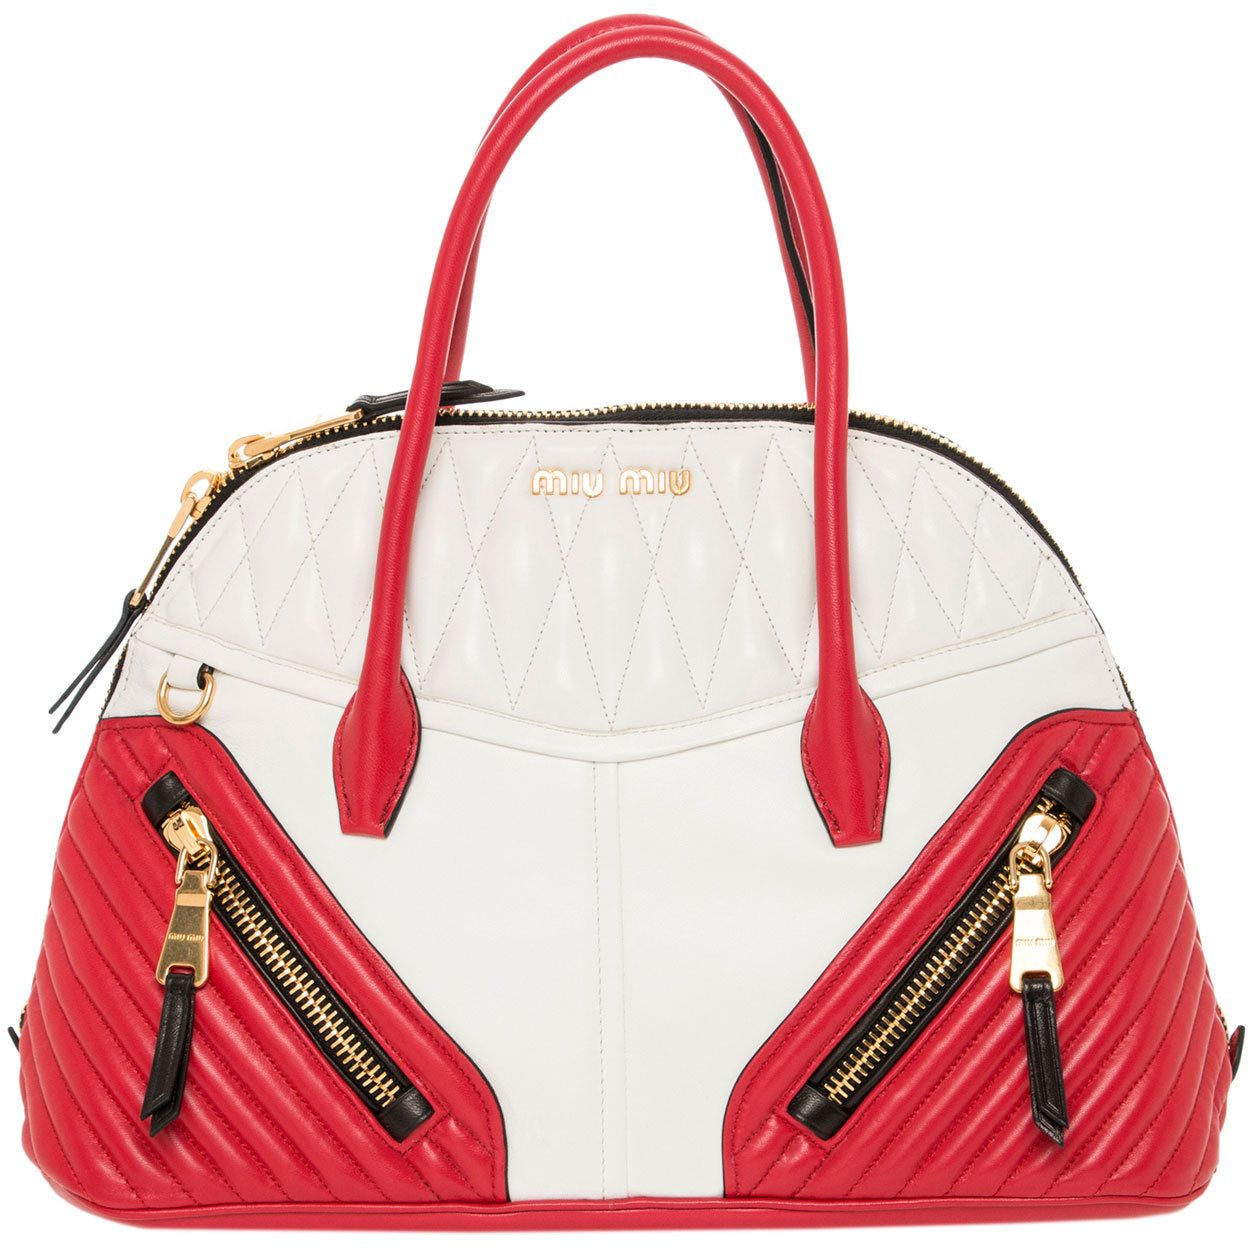 Carry Your Essentials In A Handbag That Brings Sense Of Play To Favorite Outfits